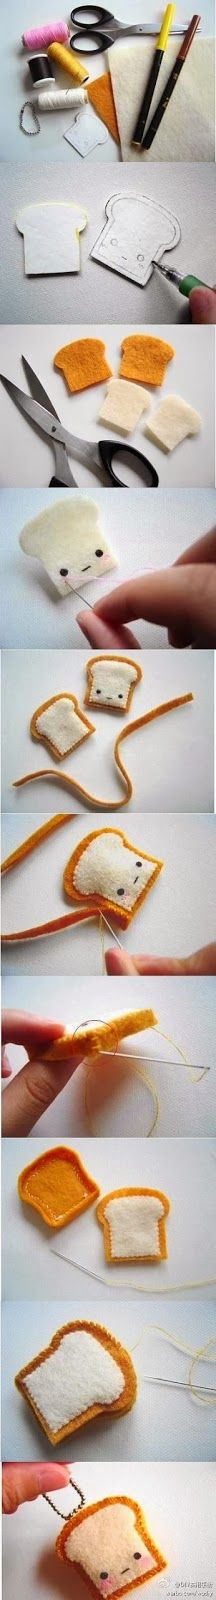 DIY Cute Little Bread Guys. I've pinned this before but I don't remember if it had a tutorial